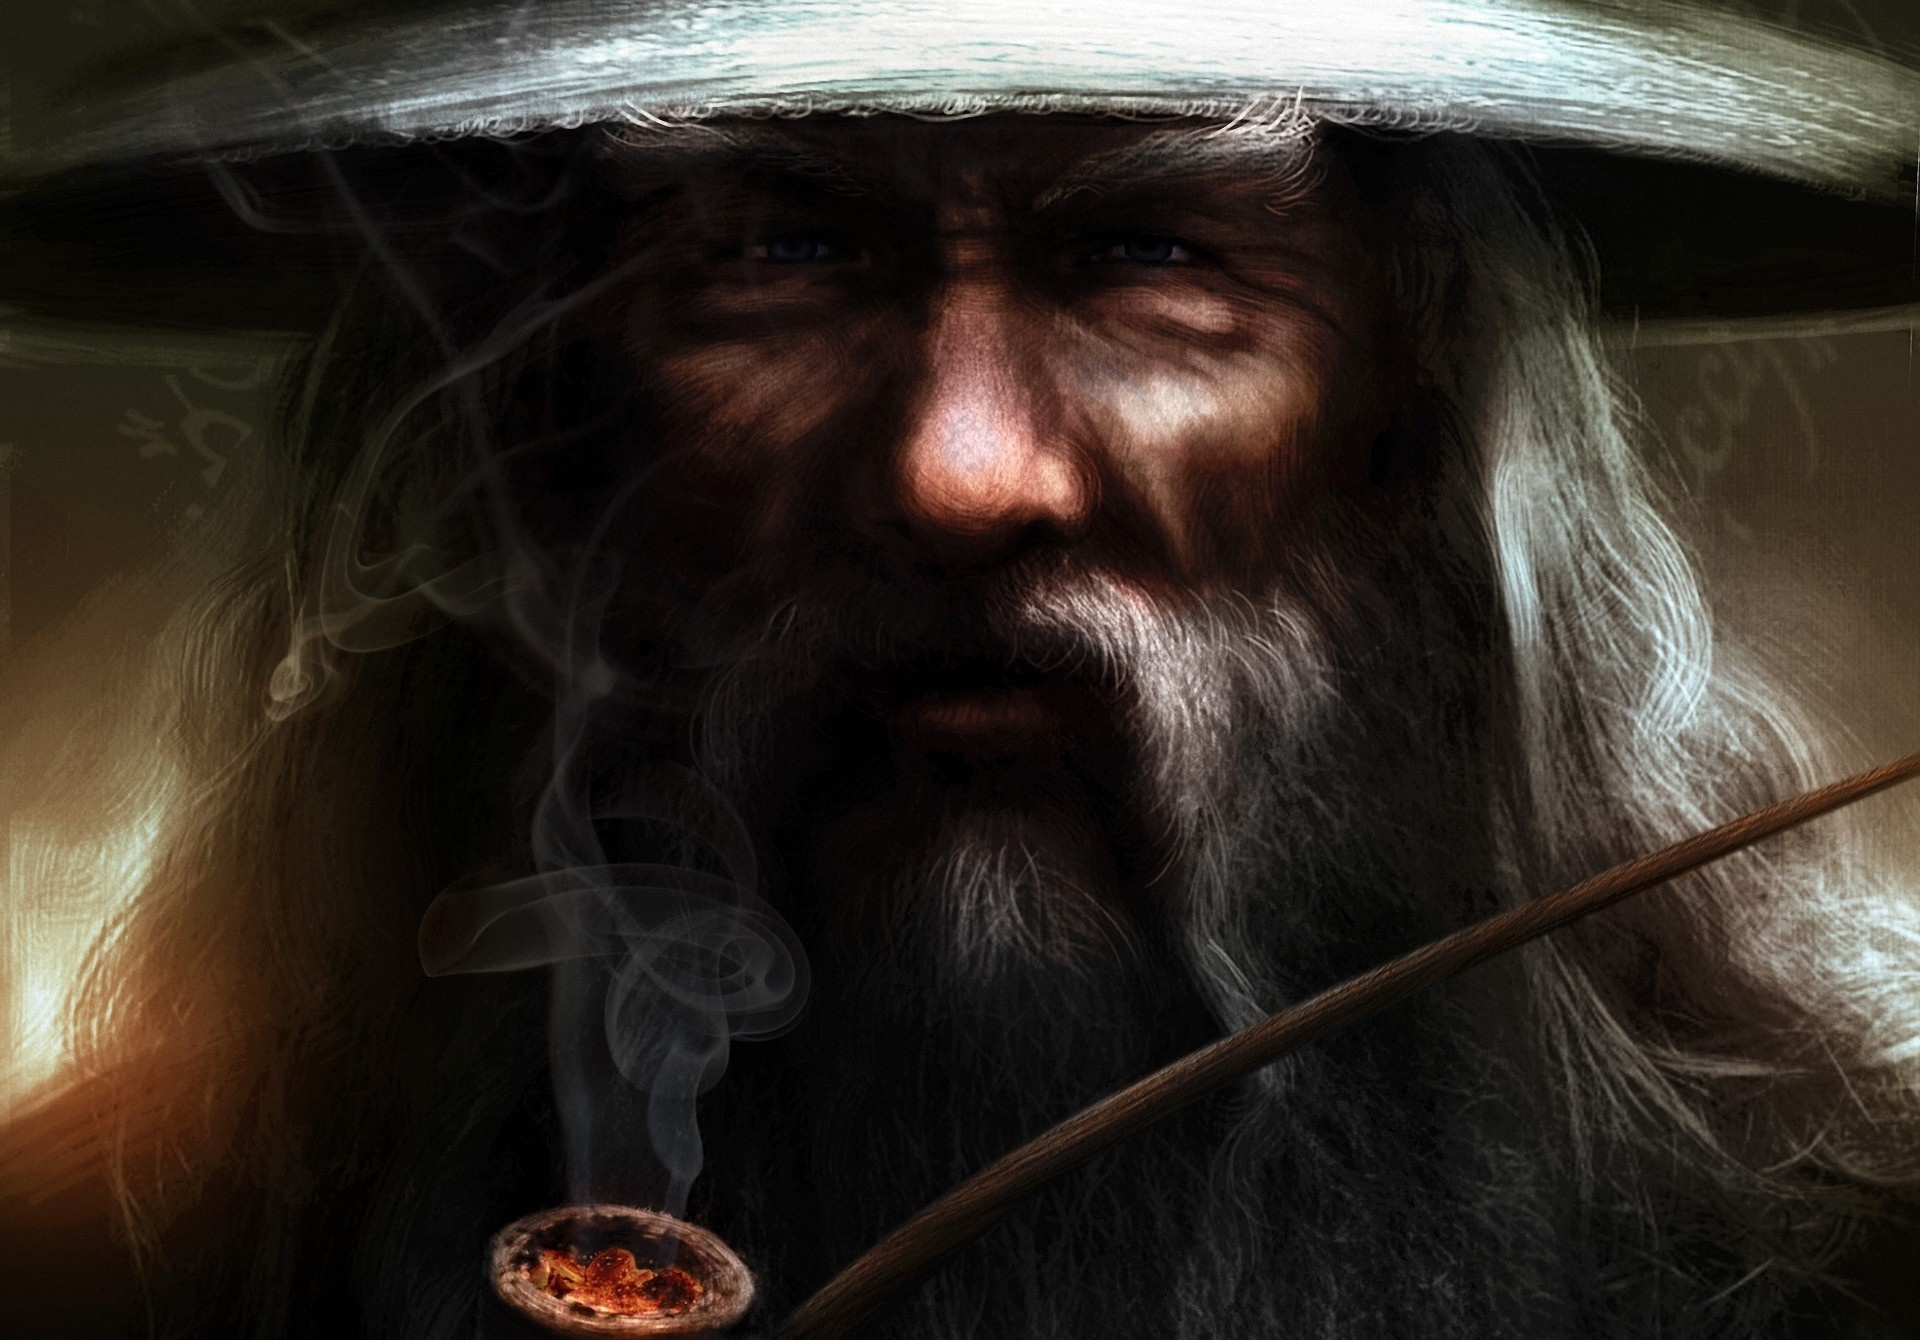 Gandalf smoke rings